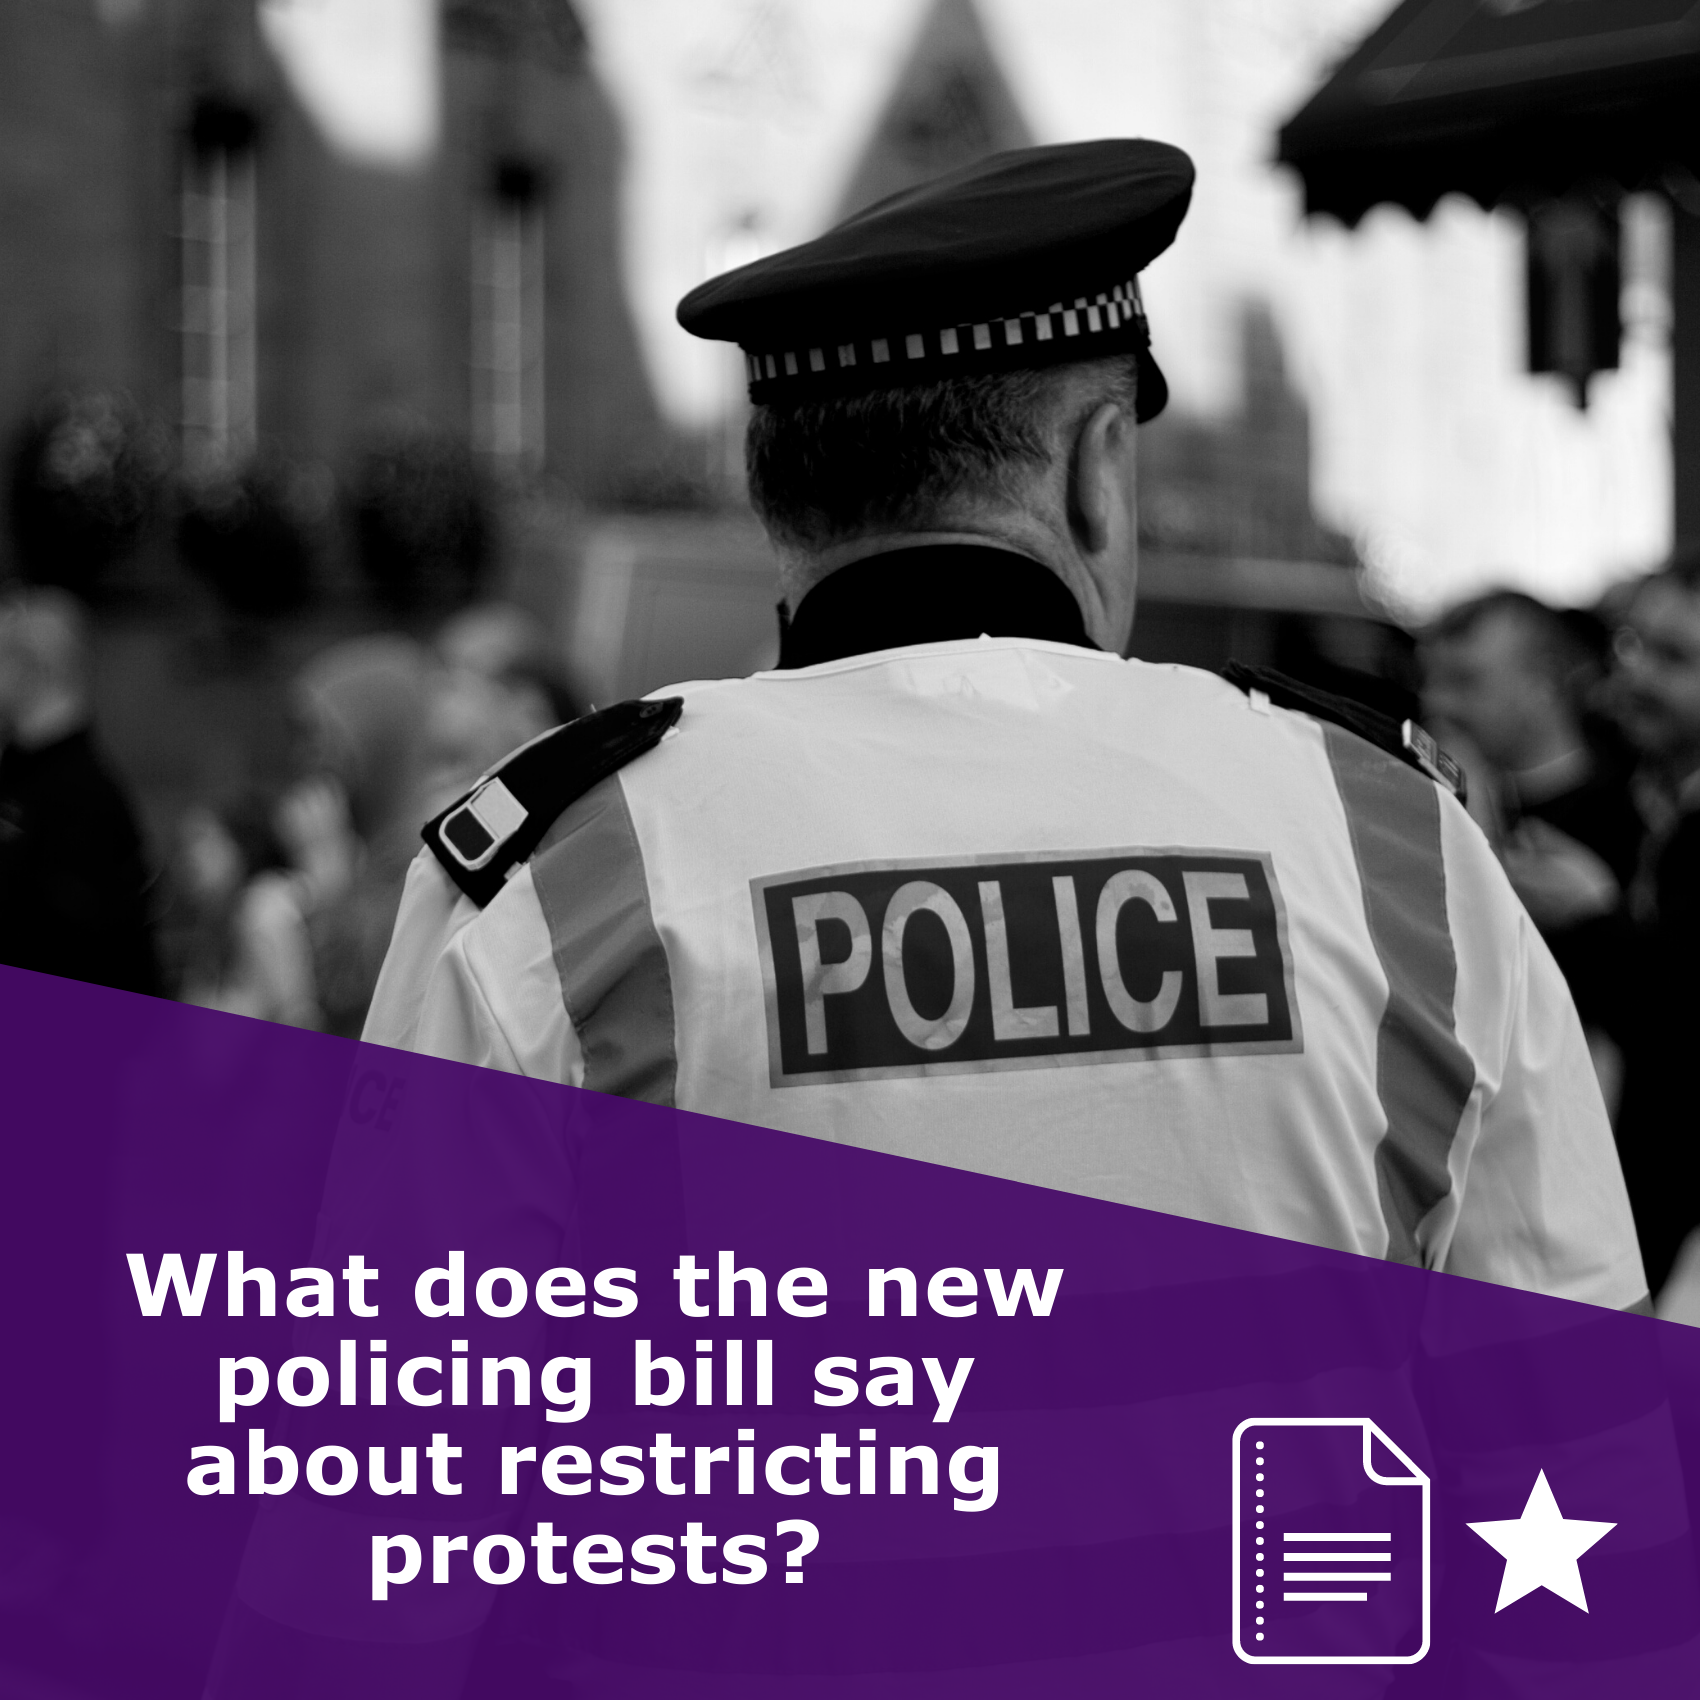 What does the new policing bill say about restricting protests? by Netpol, article rated 1 star